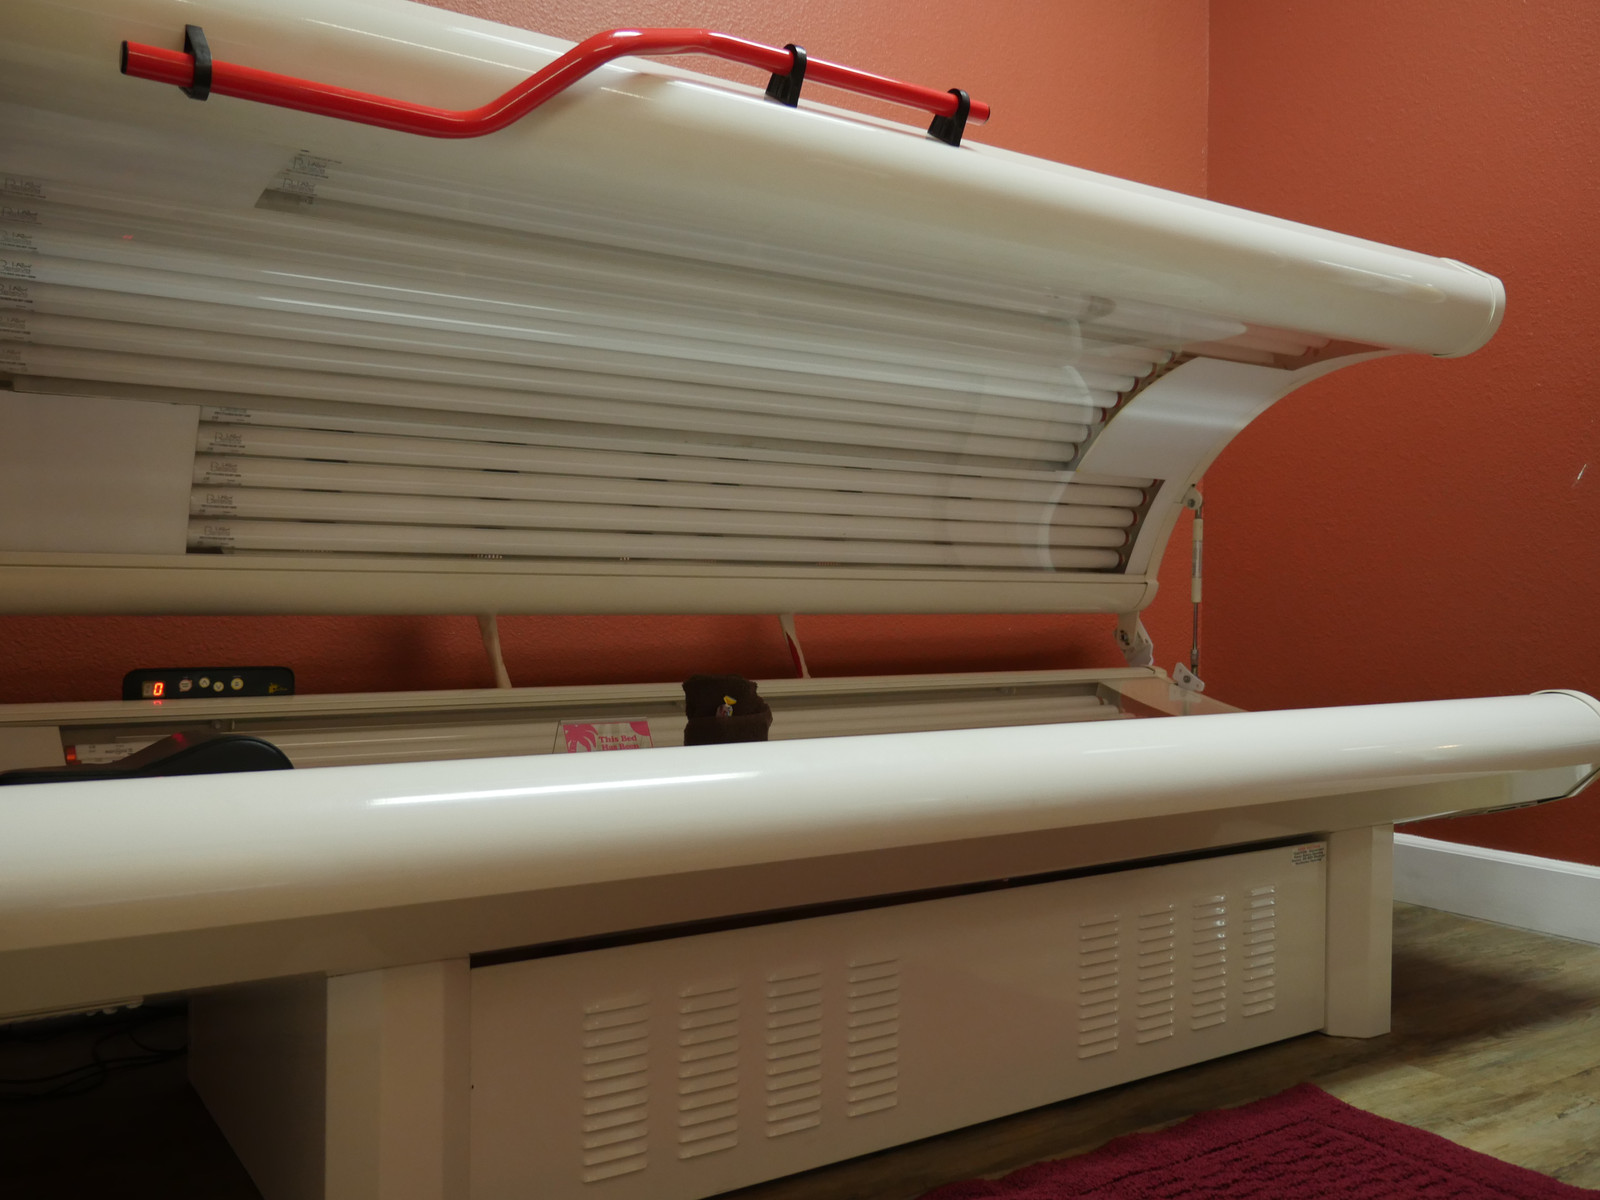 High Pressure Tanning Bed Brands 23 Best Tanning Images On